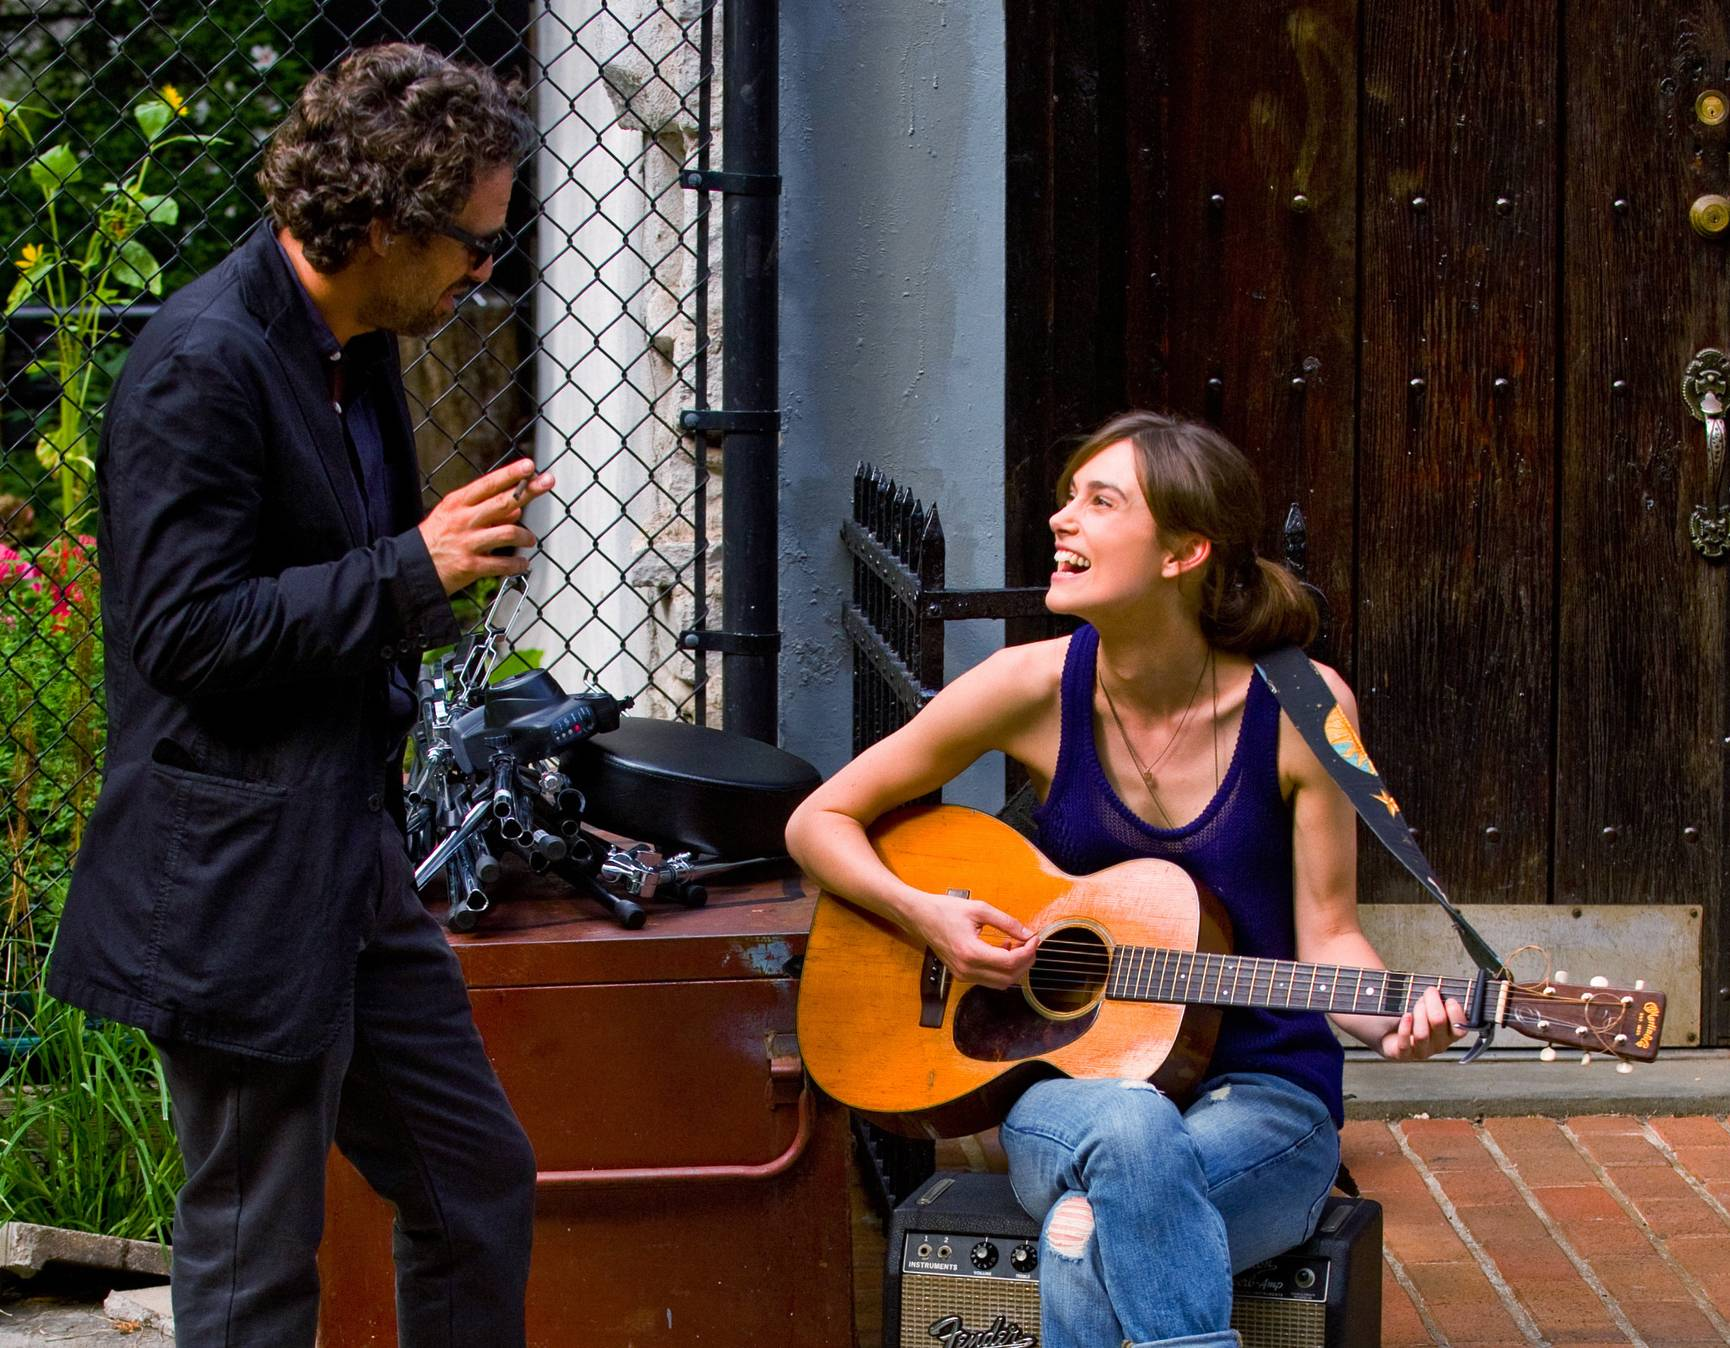 Music powers rebirth in 'Begin Again'